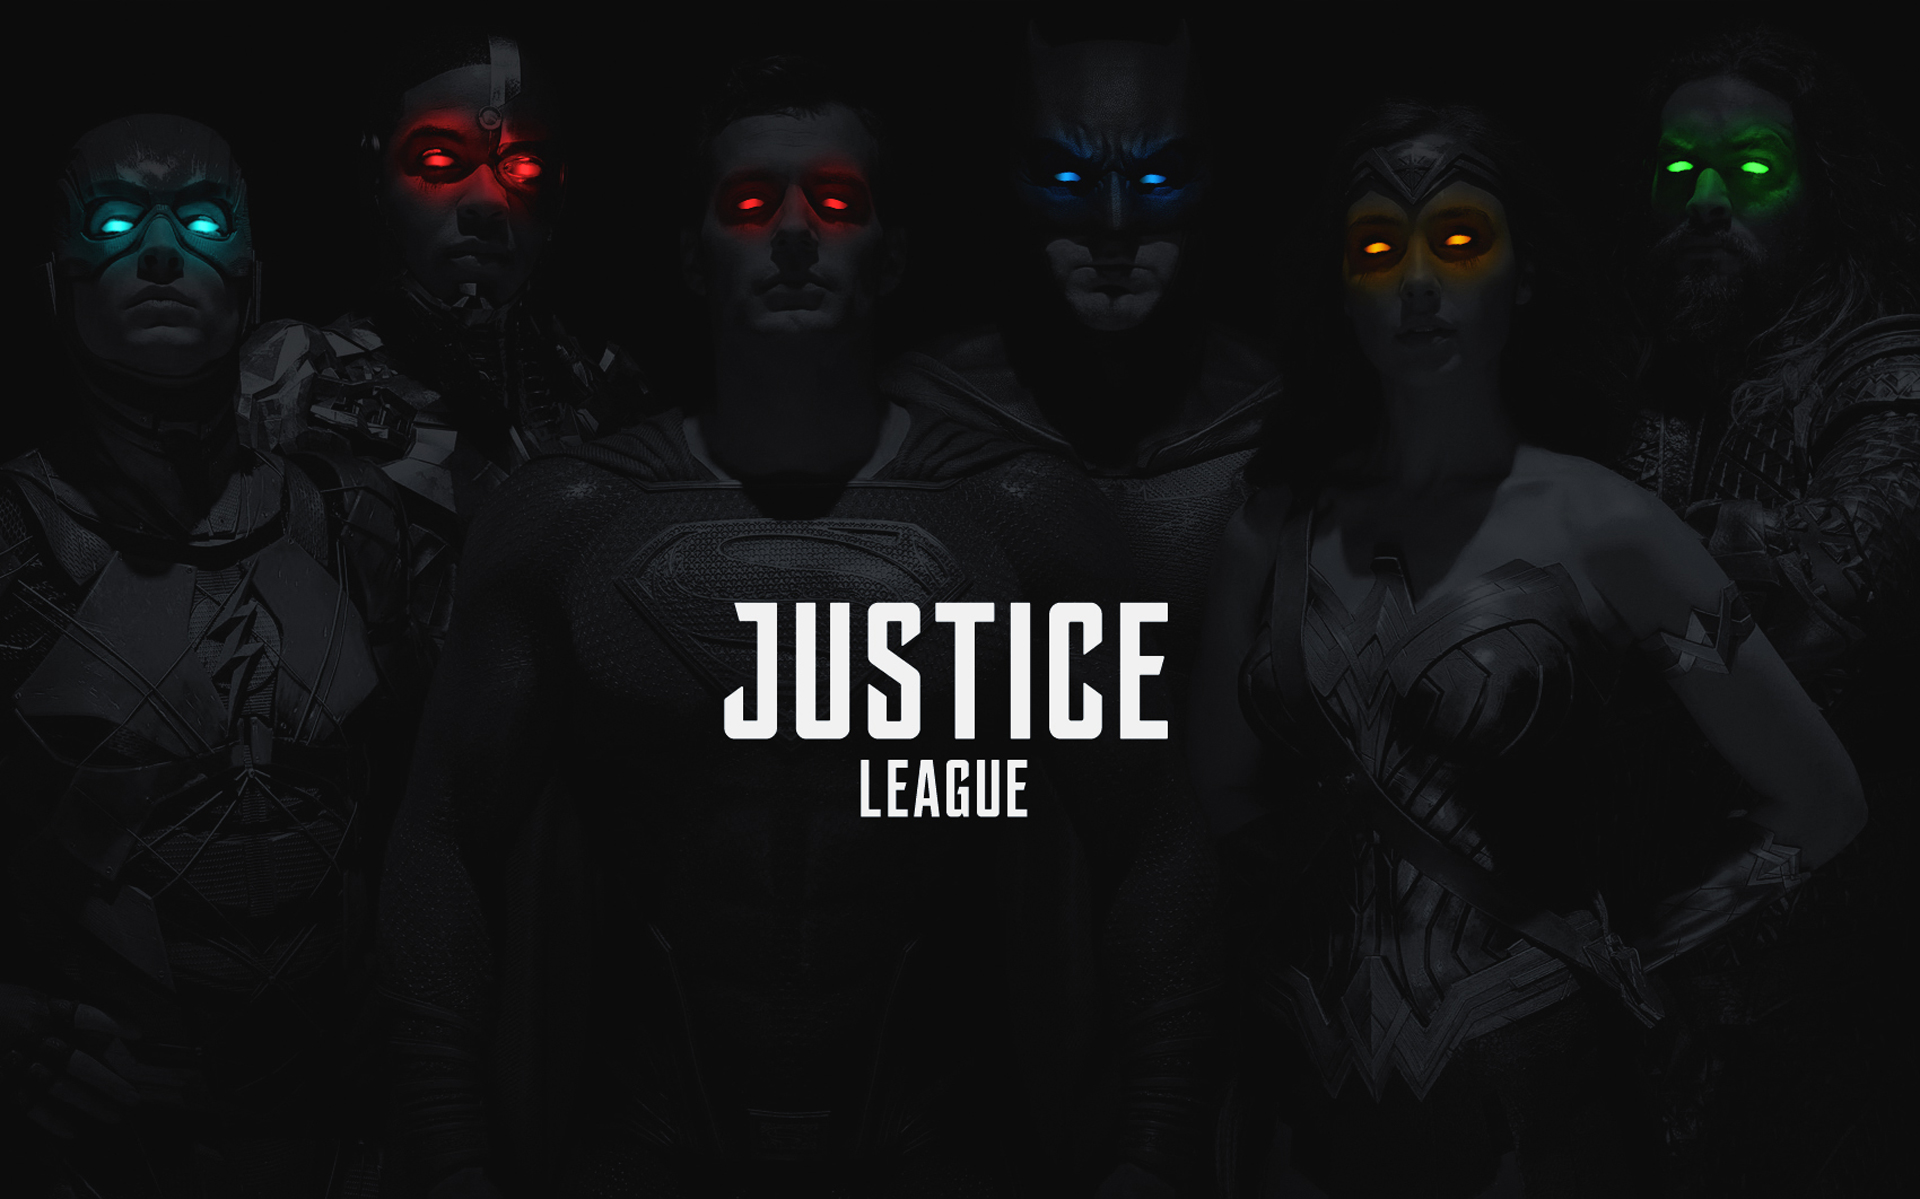 Justice League 2017 Monochrome Colored Eyes, HD Movies, 4k